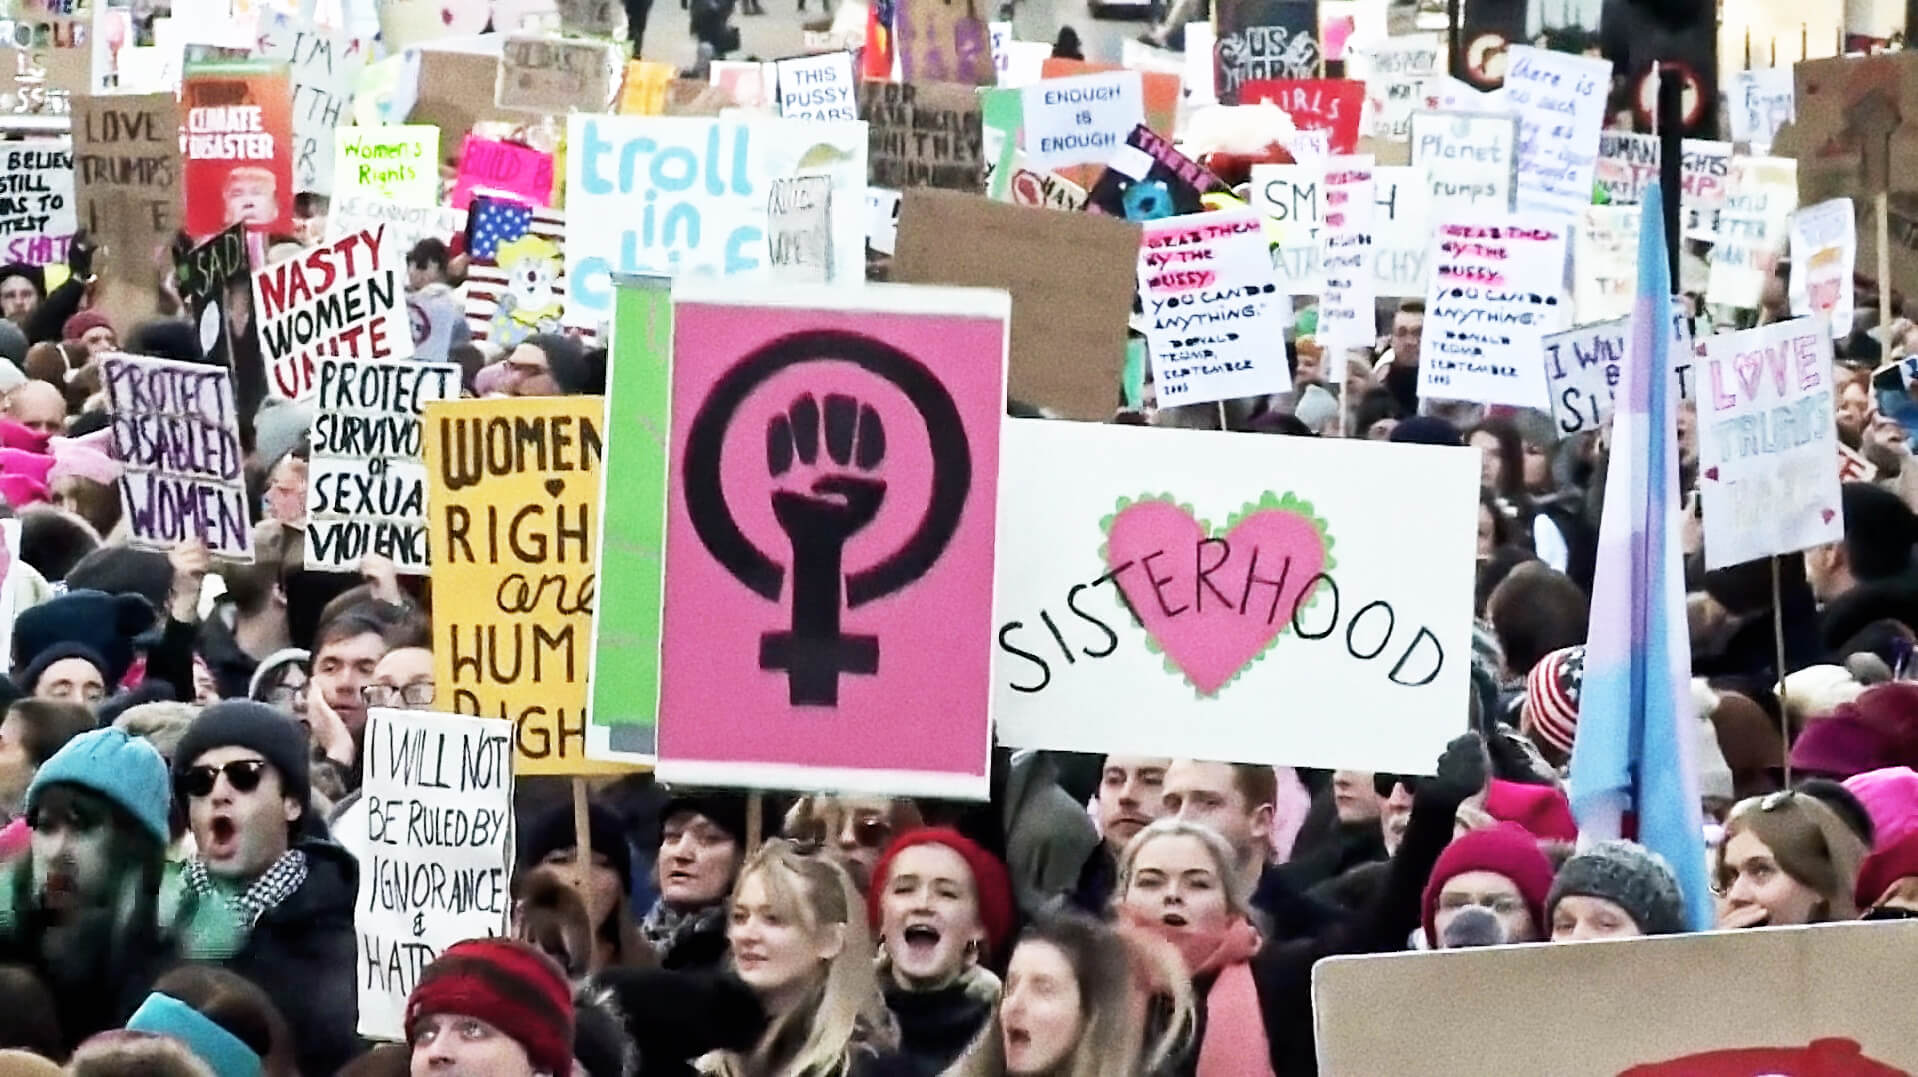 feminist protest march signs